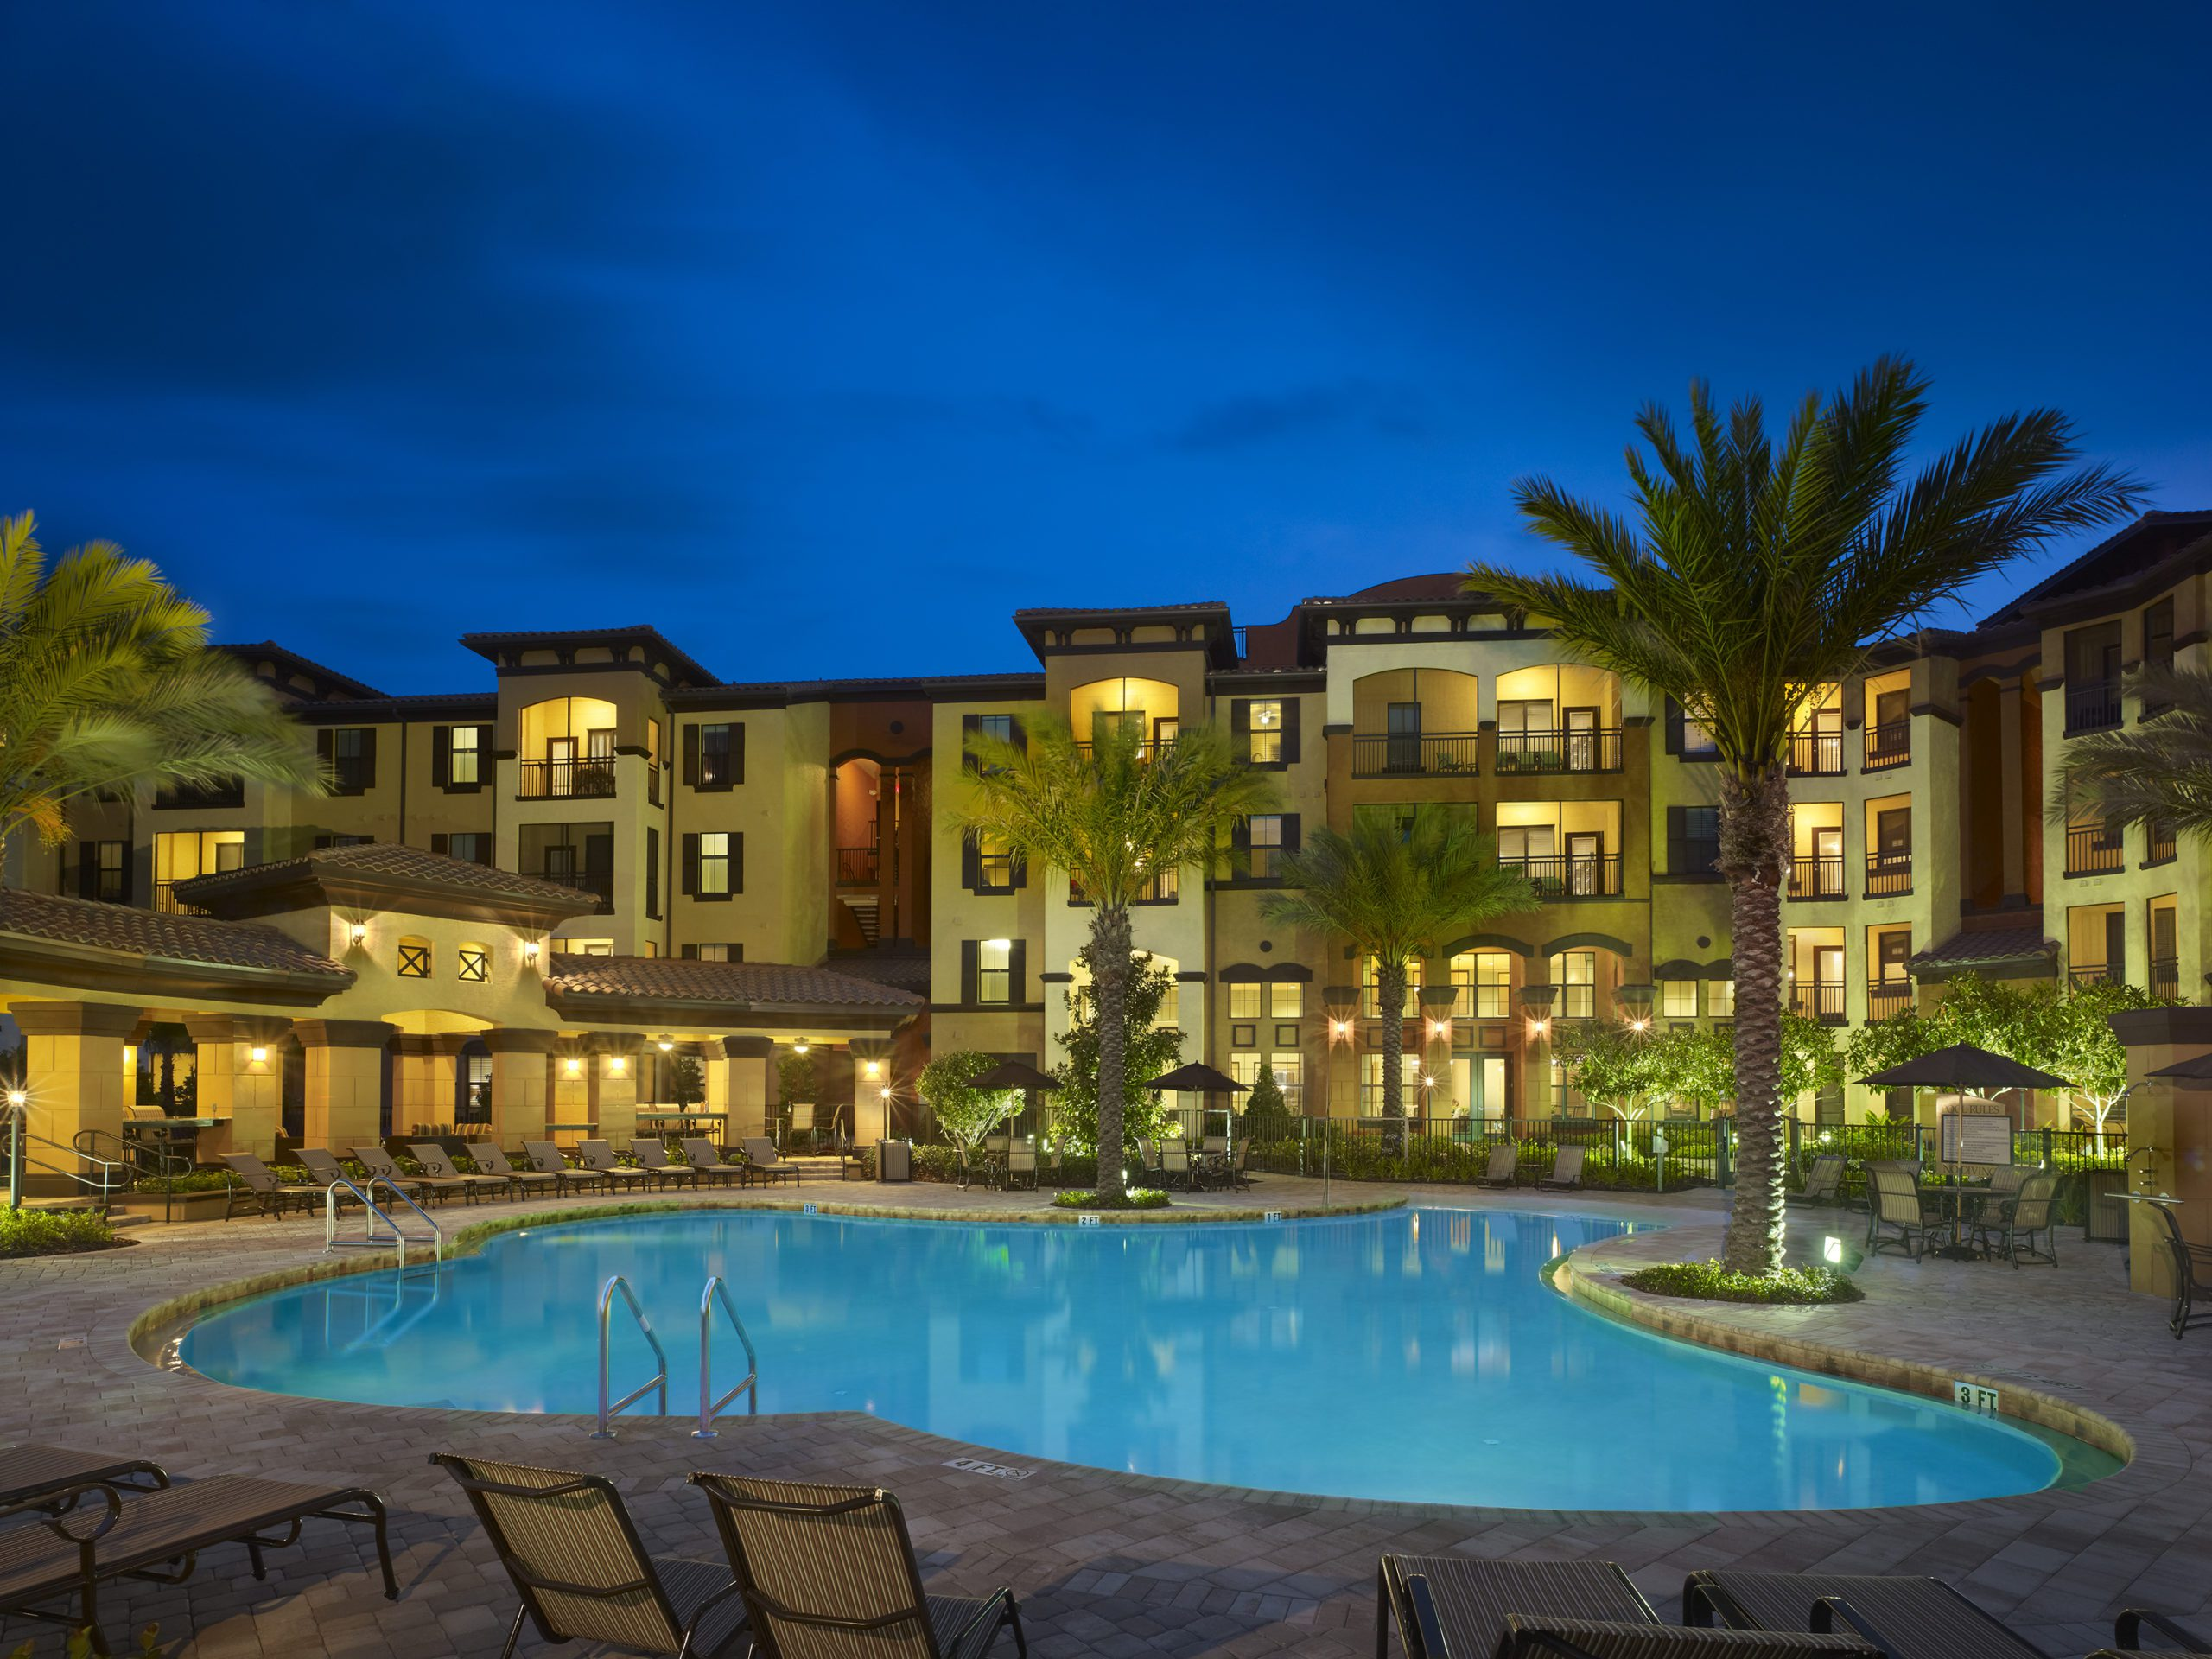 The Courtney at Bay Pines | St. Petersburg, FL | 330 Units